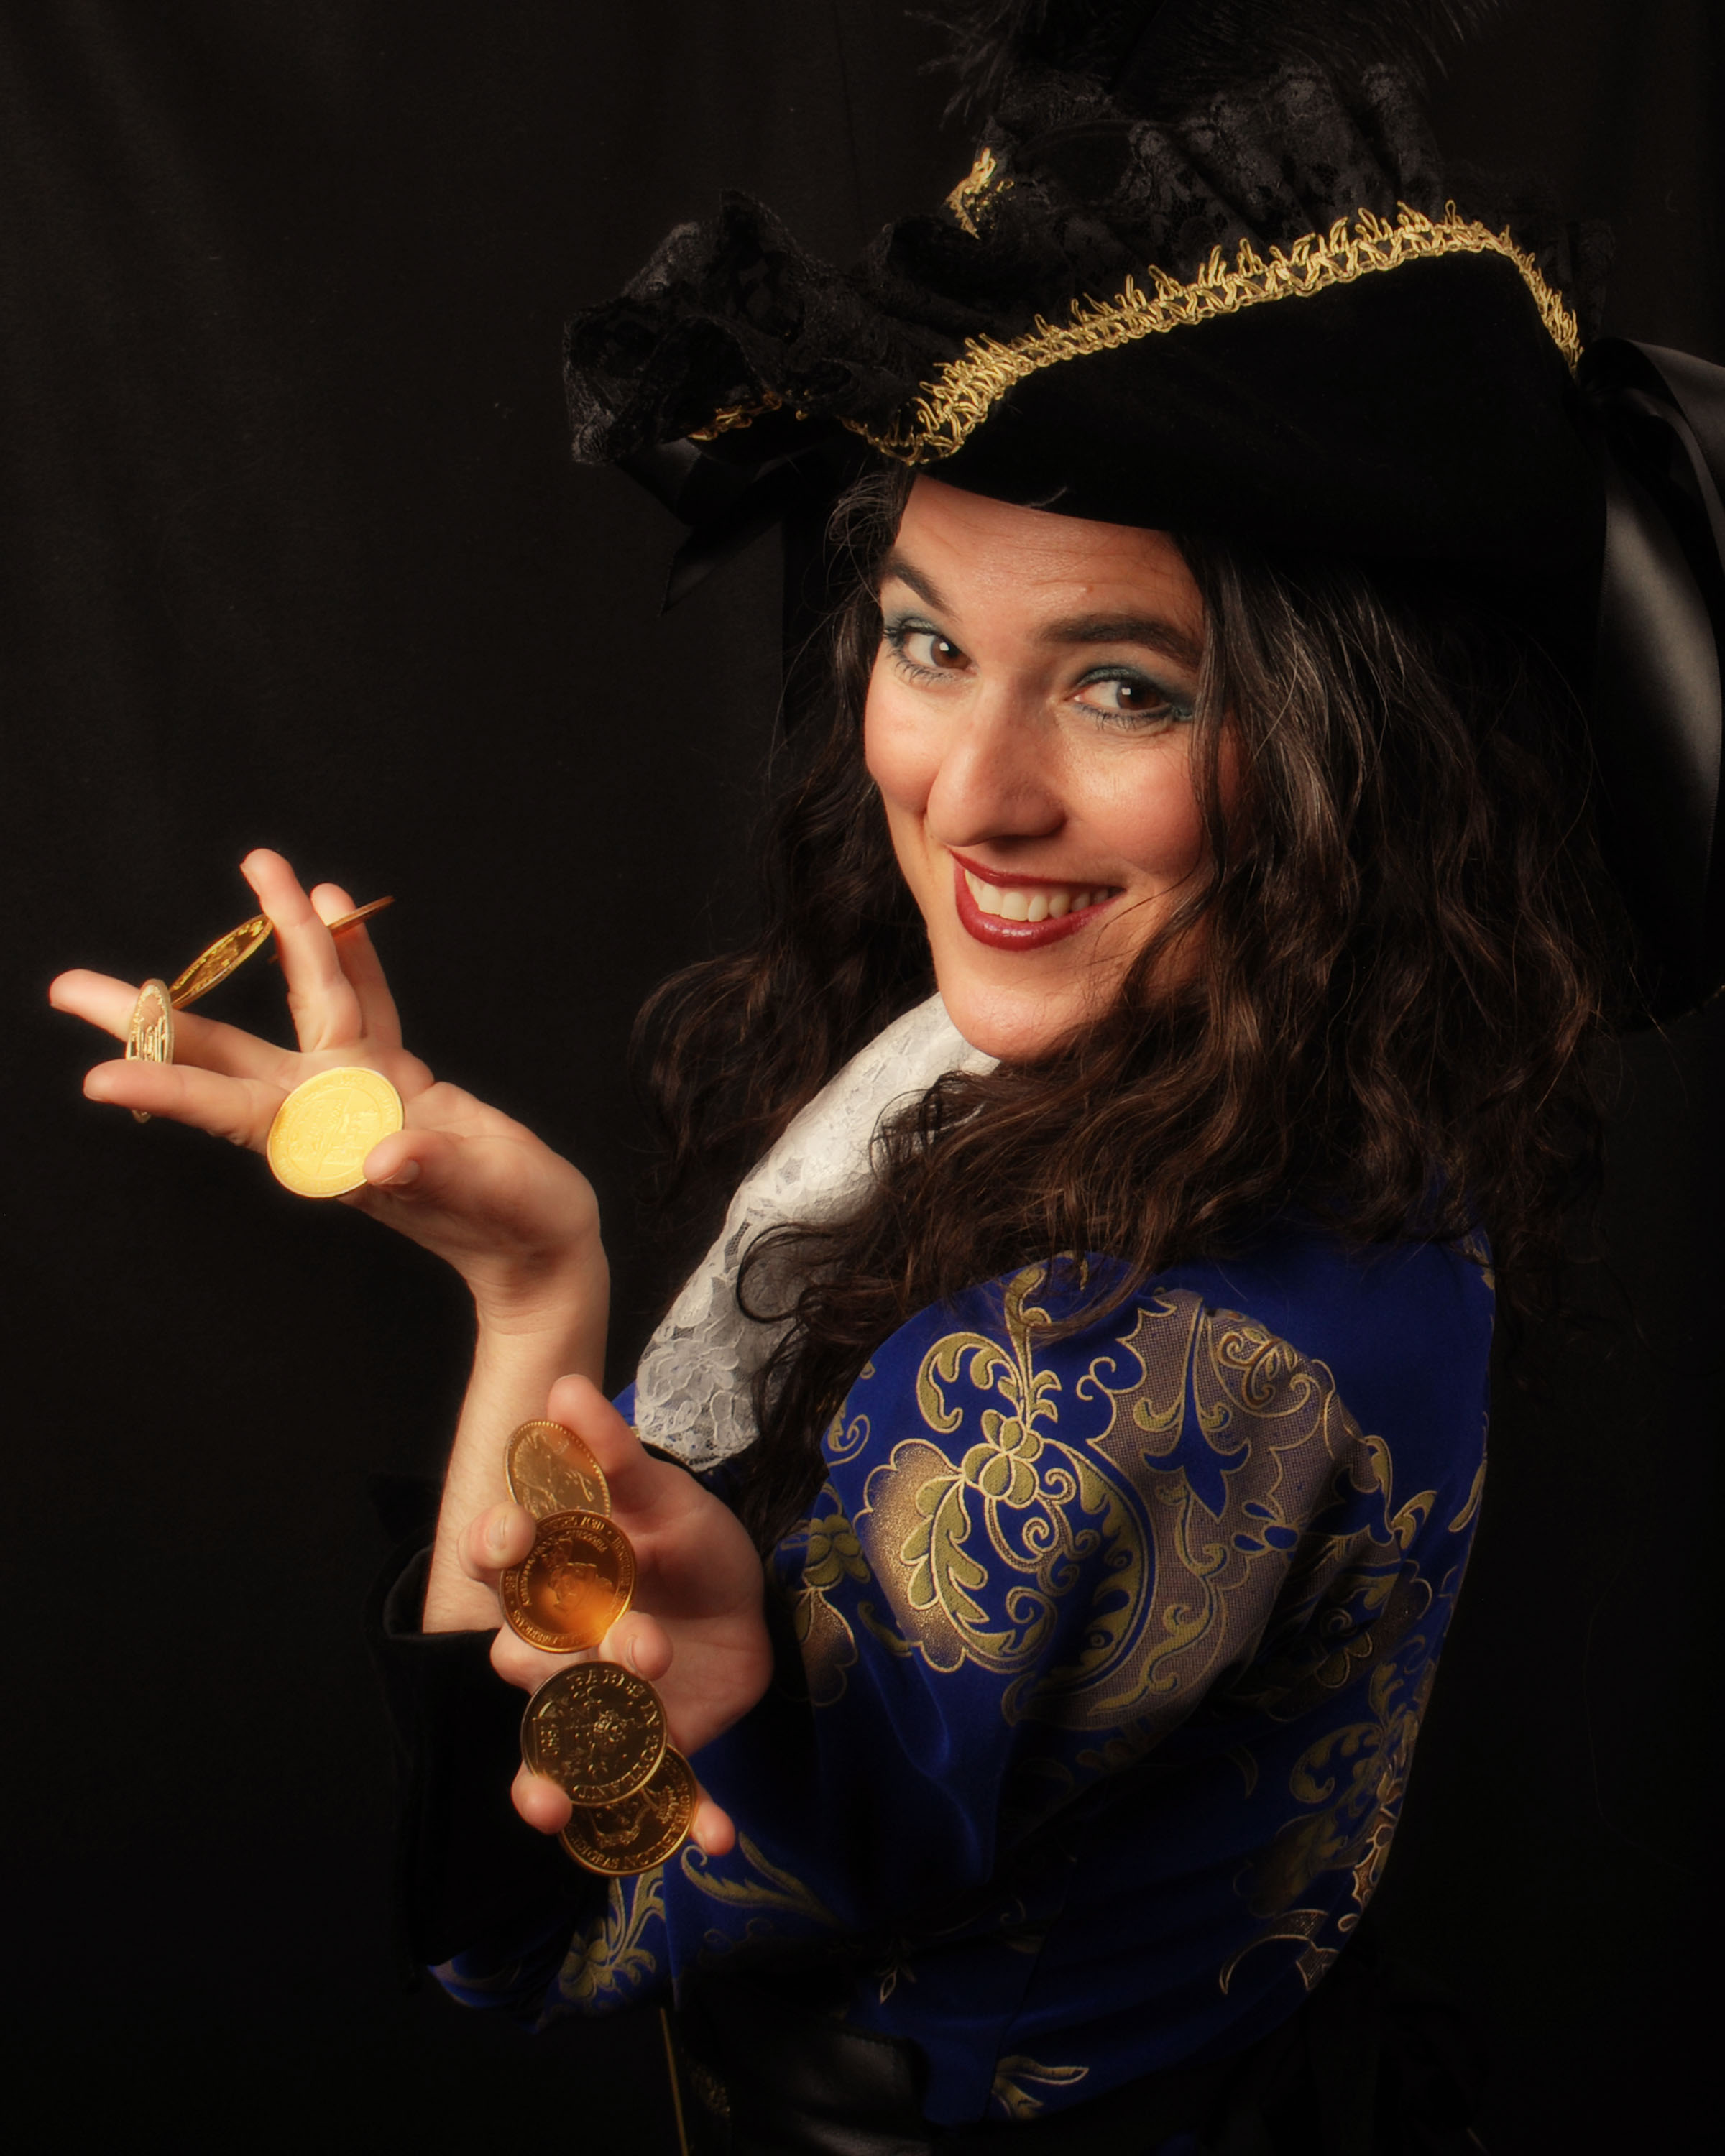 Magician Erica Sodos Presents Captain Rosebud and Her Ship of Enchantment